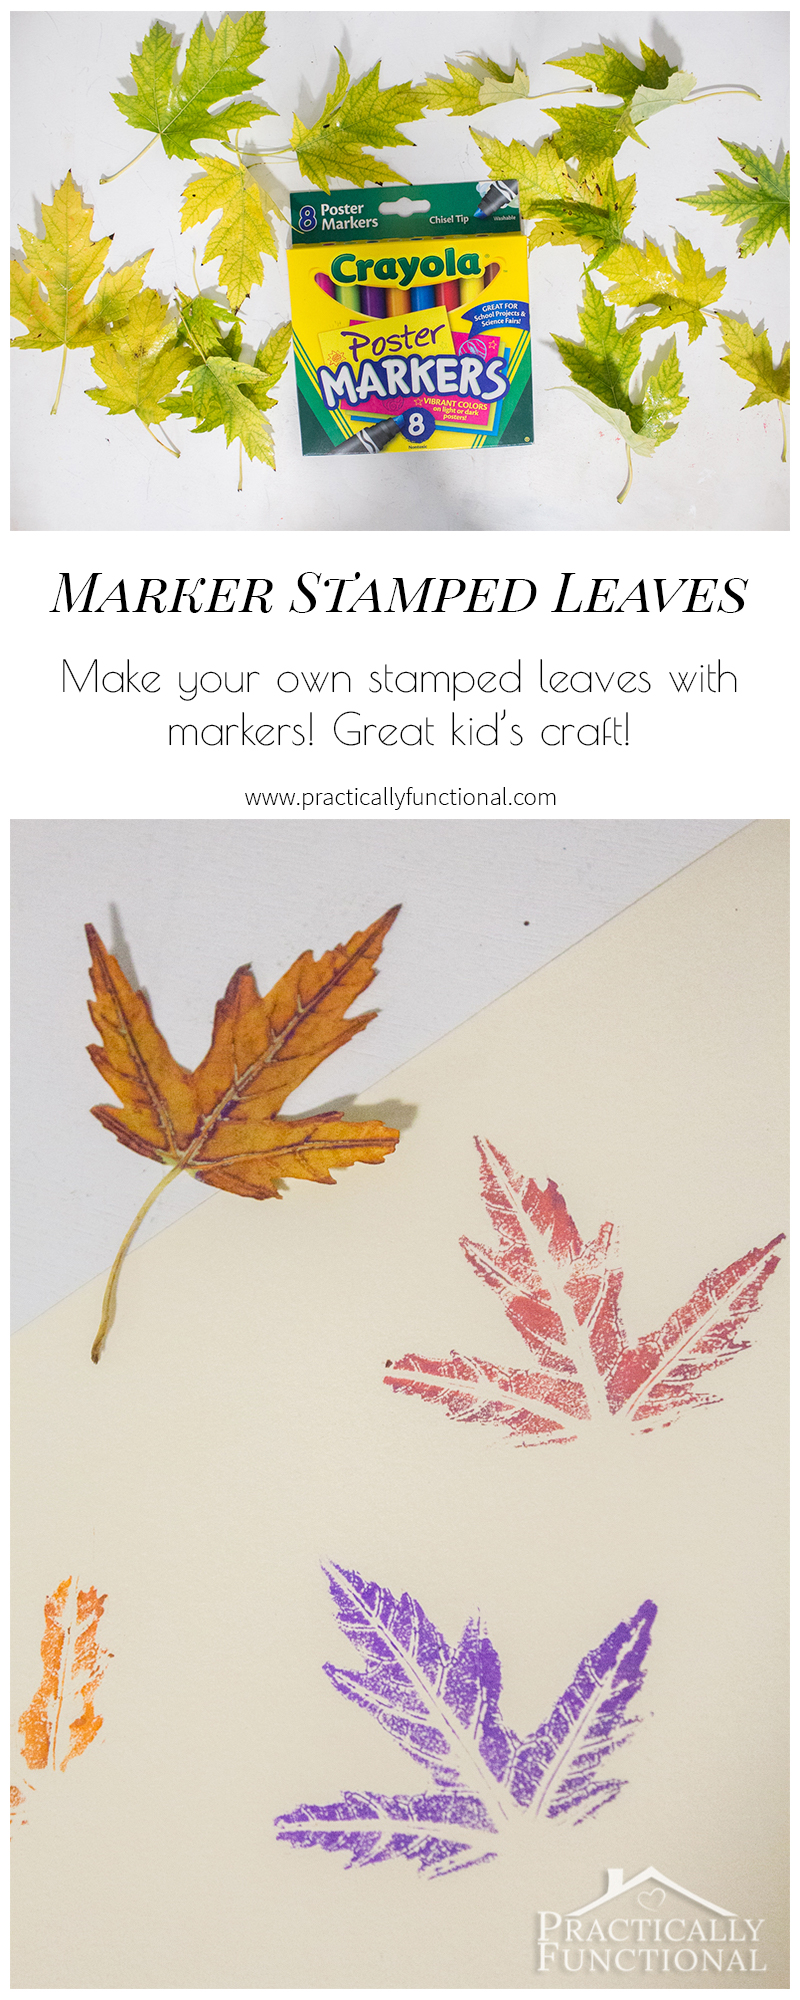 Use markers instead of paint to stamp with real leaves! Way less messy and you can see a lot more detail in the leaves!